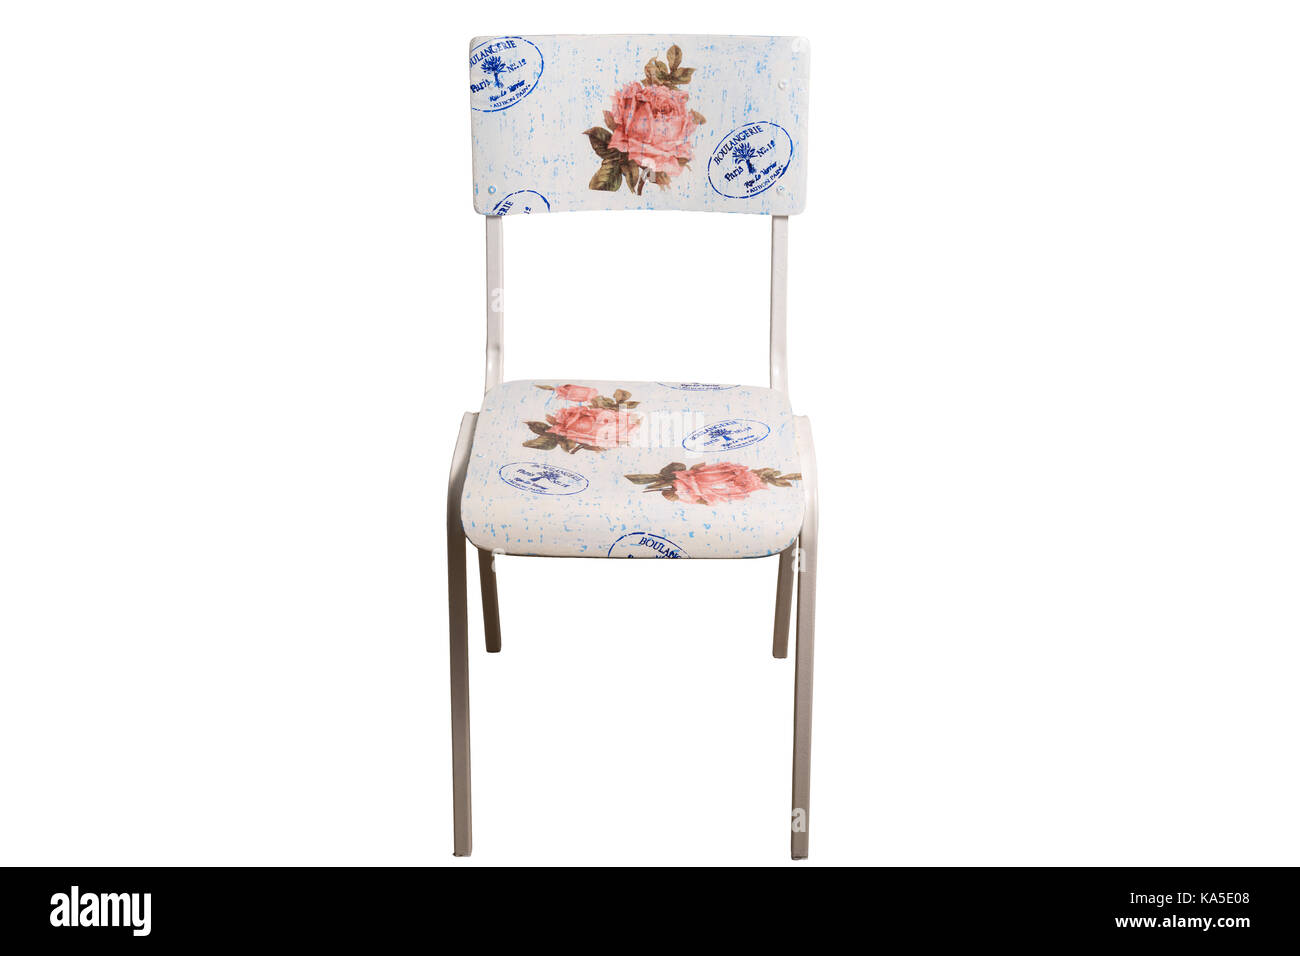 Vintage school chair decorated with decoupage technique. Isolated on white background. Stock Photo